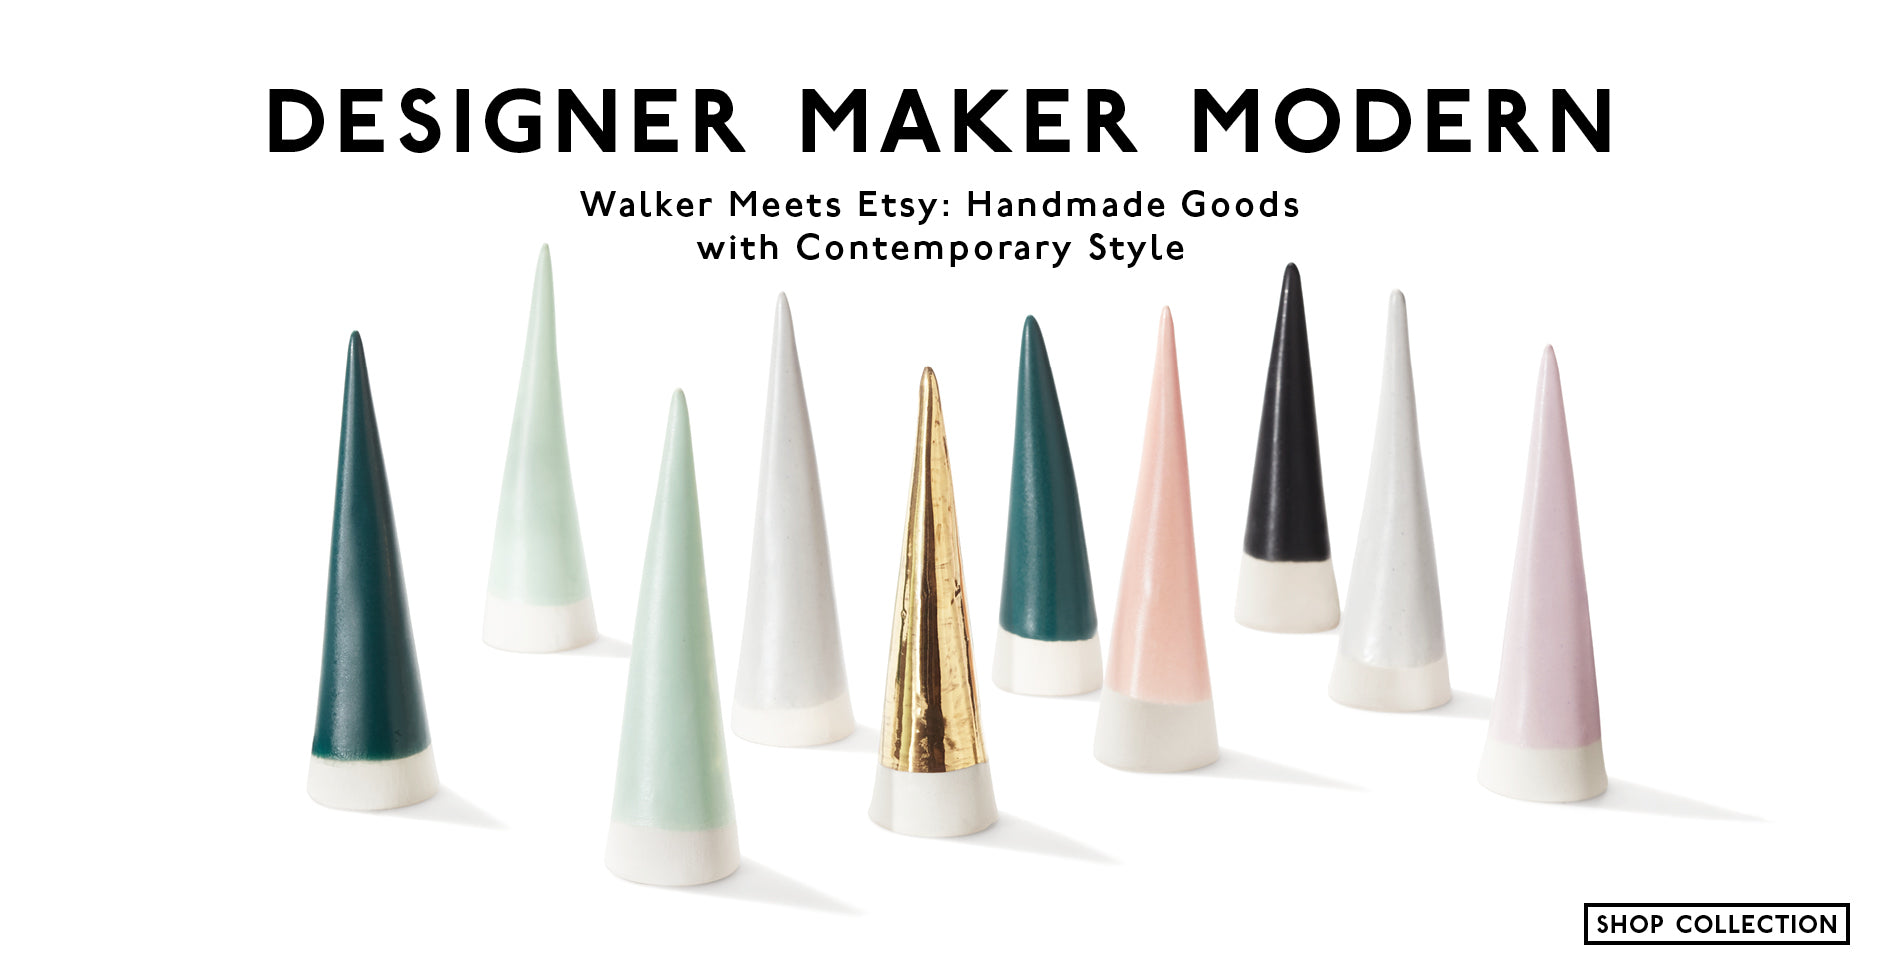 Designer Maker Modern: Walker Meets Etsy